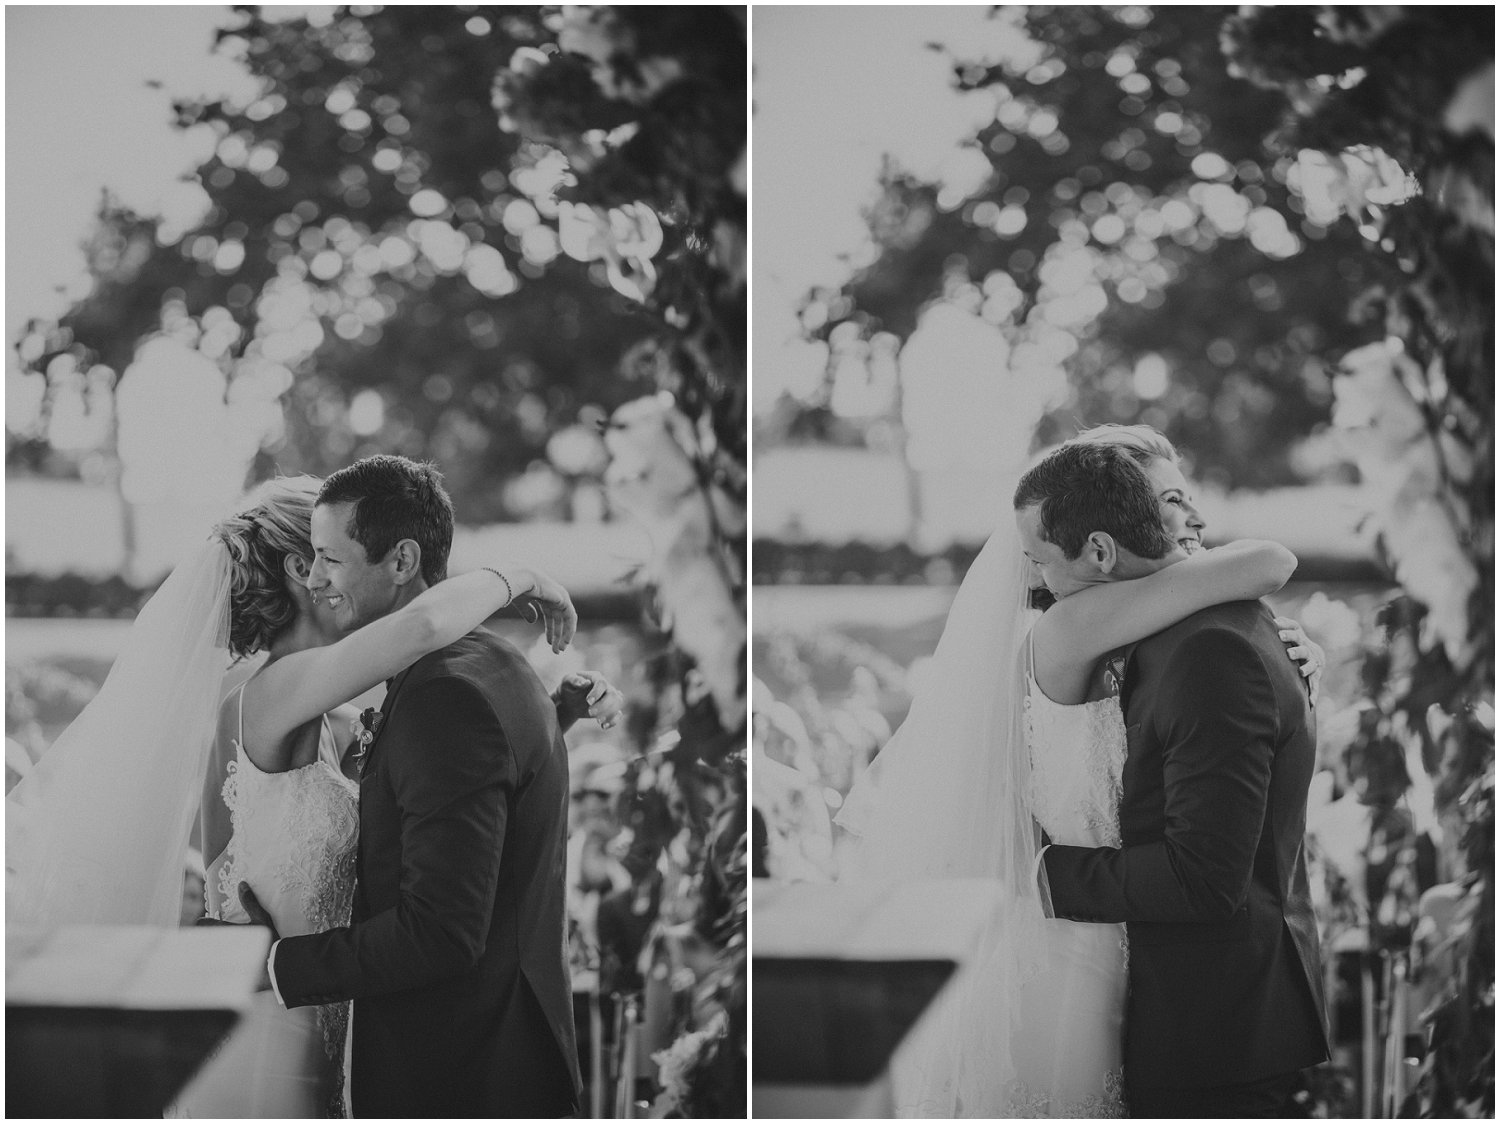 Top Artistic Creative Documentary Wedding Photographer Cape Town South Africa Rue Kruger_0115.jpg